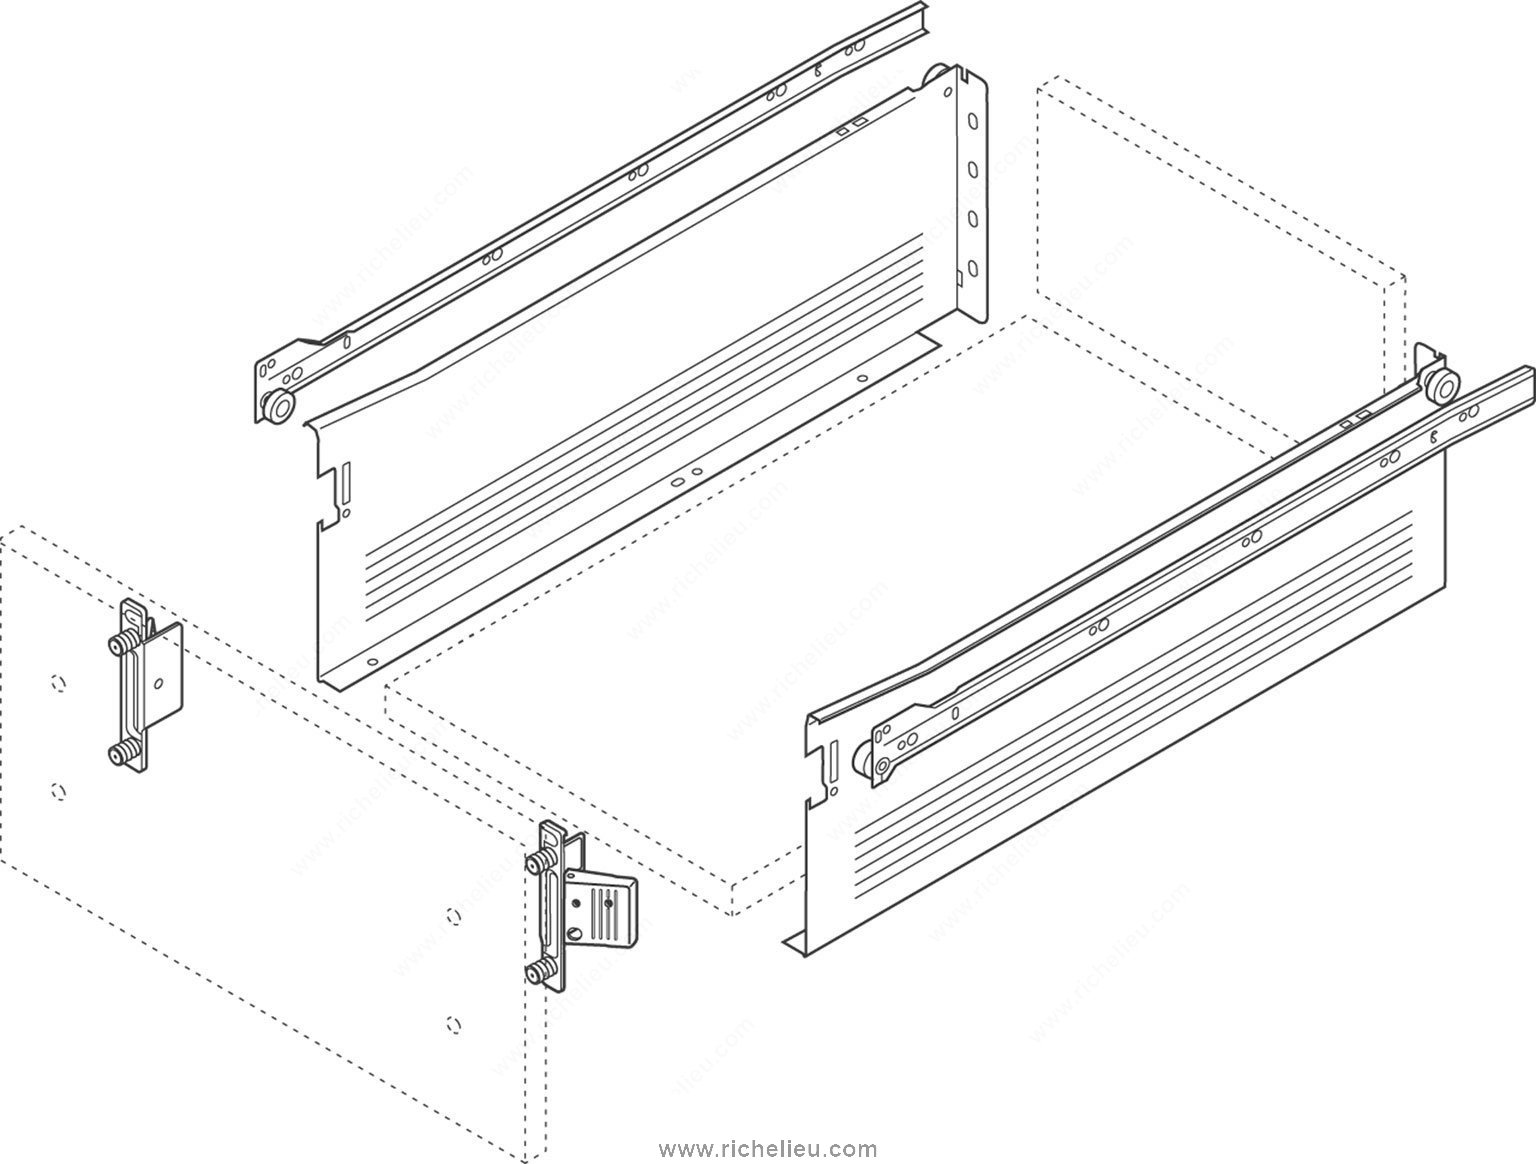 blum drawer front adjuster instructions